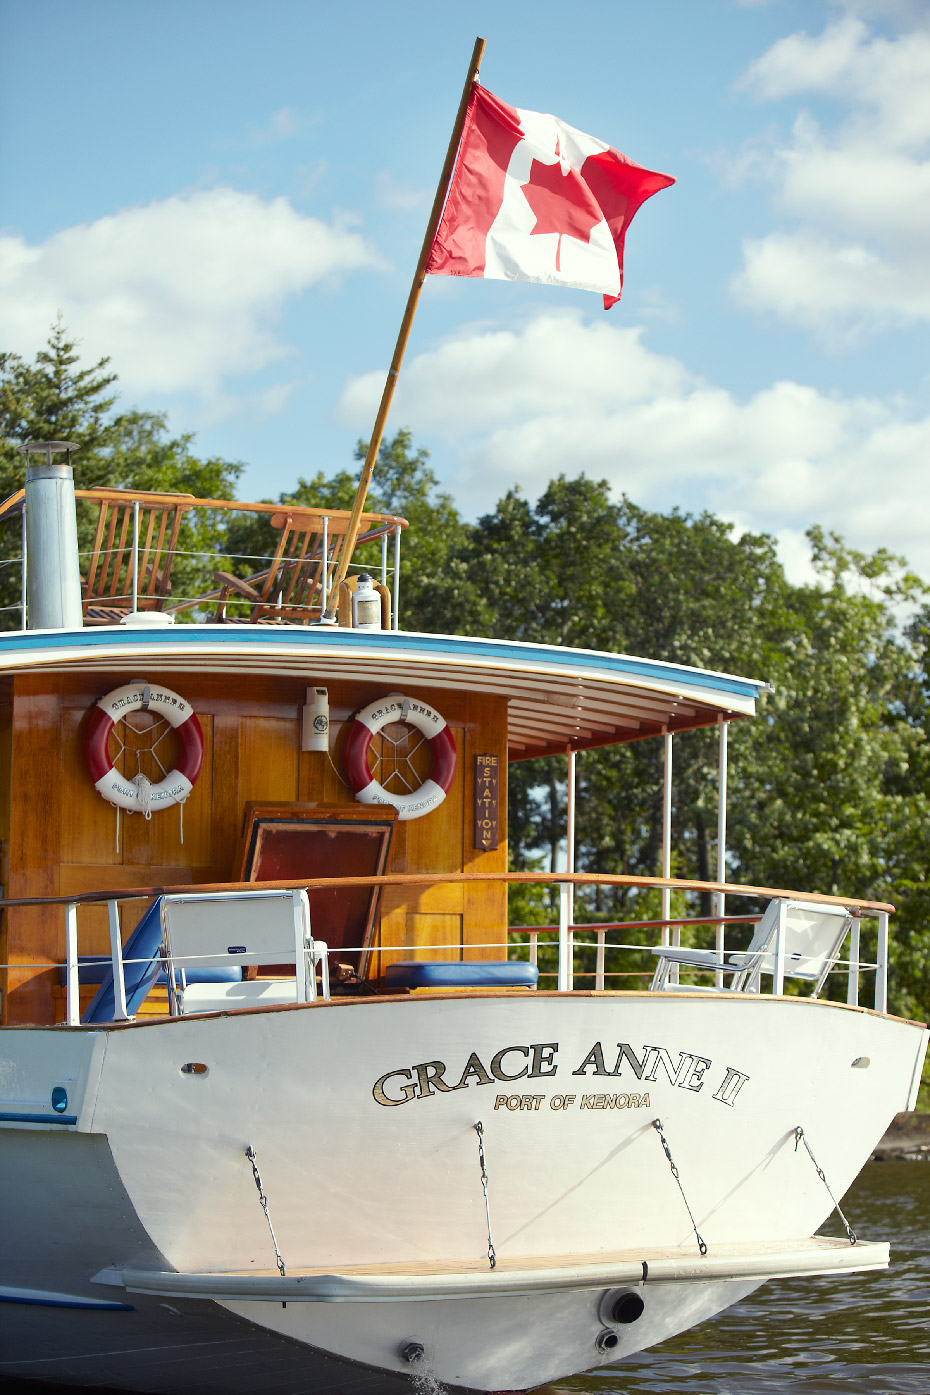 Stacey Van Berkel Photography I Grace Anne II Luxury 1930's Yacht I Lake of the Woods I Kenora, Ontario